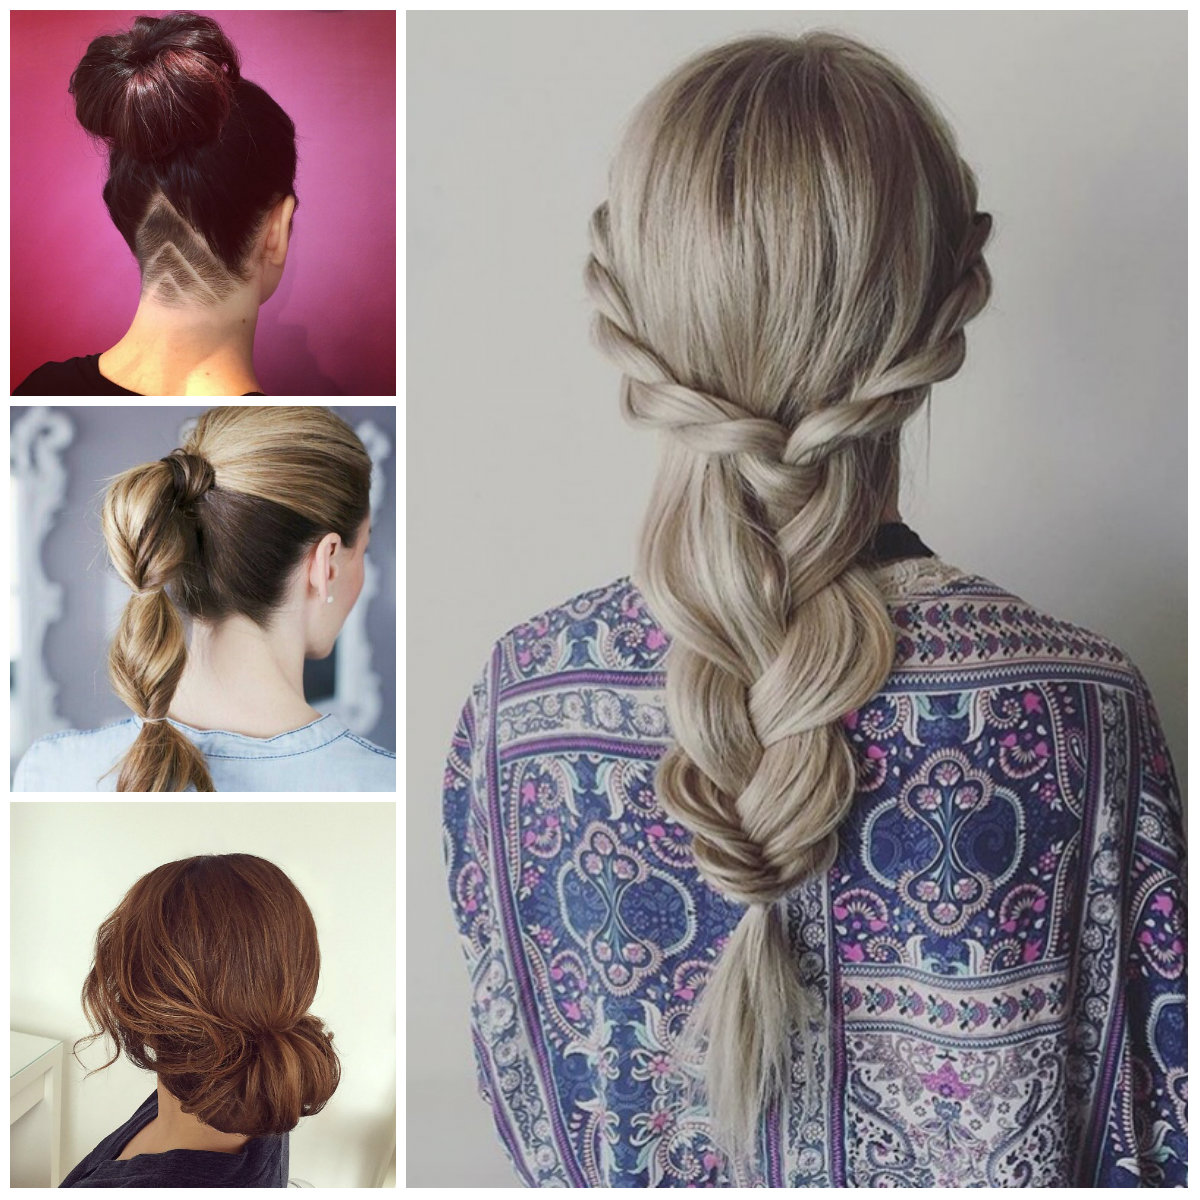 Quick and Easy Hairstyles for 2022